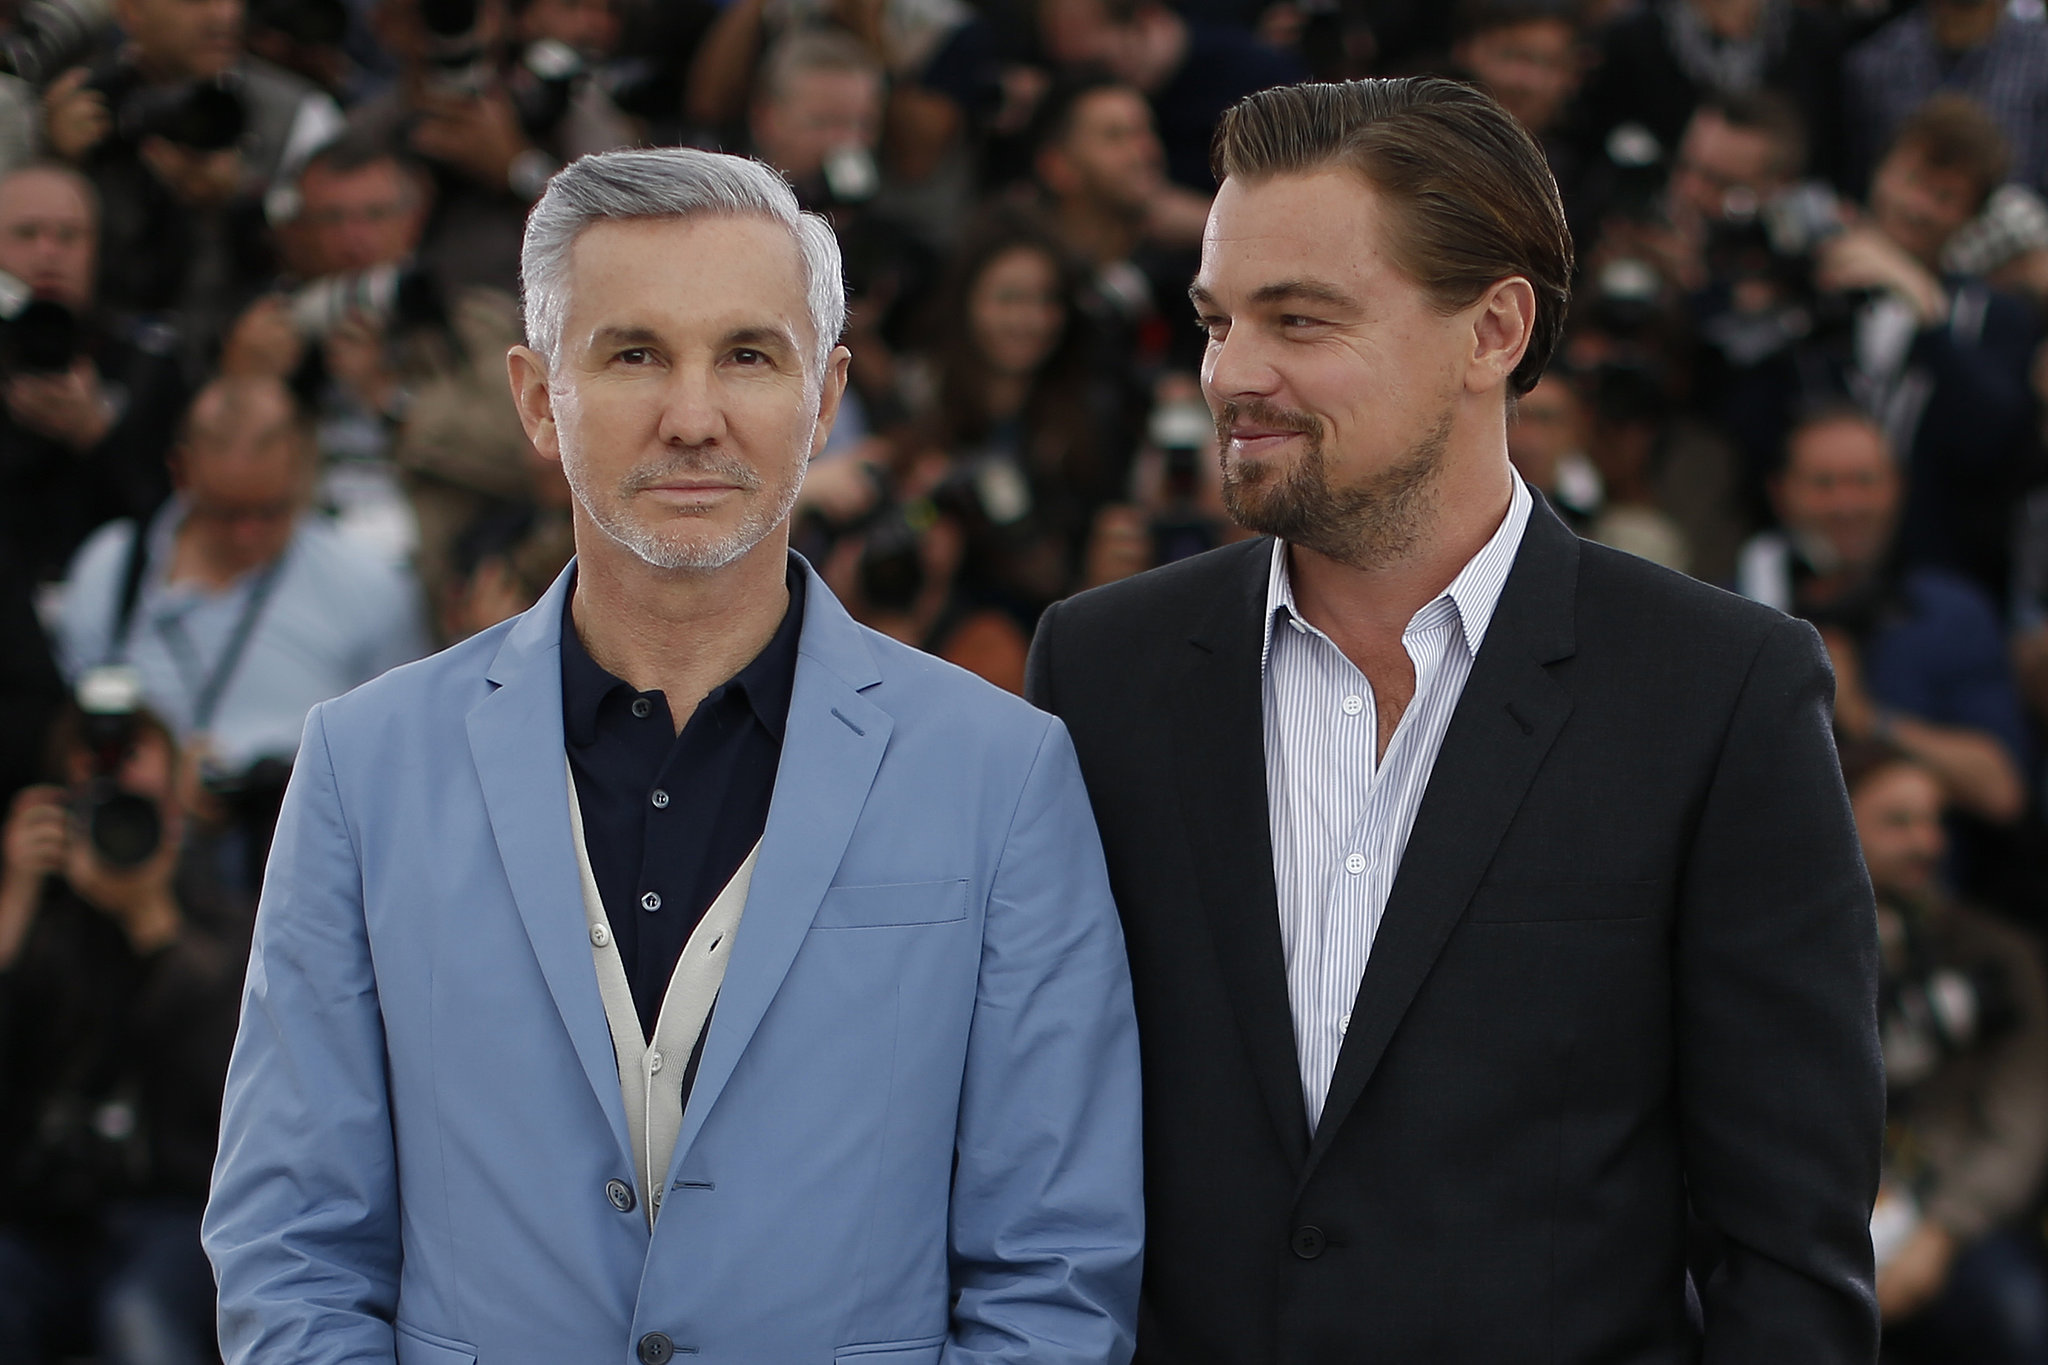 Leonardo DiCaprio and Baz Luhrmann faced the cameras at a photocall for The Great Gatsby.